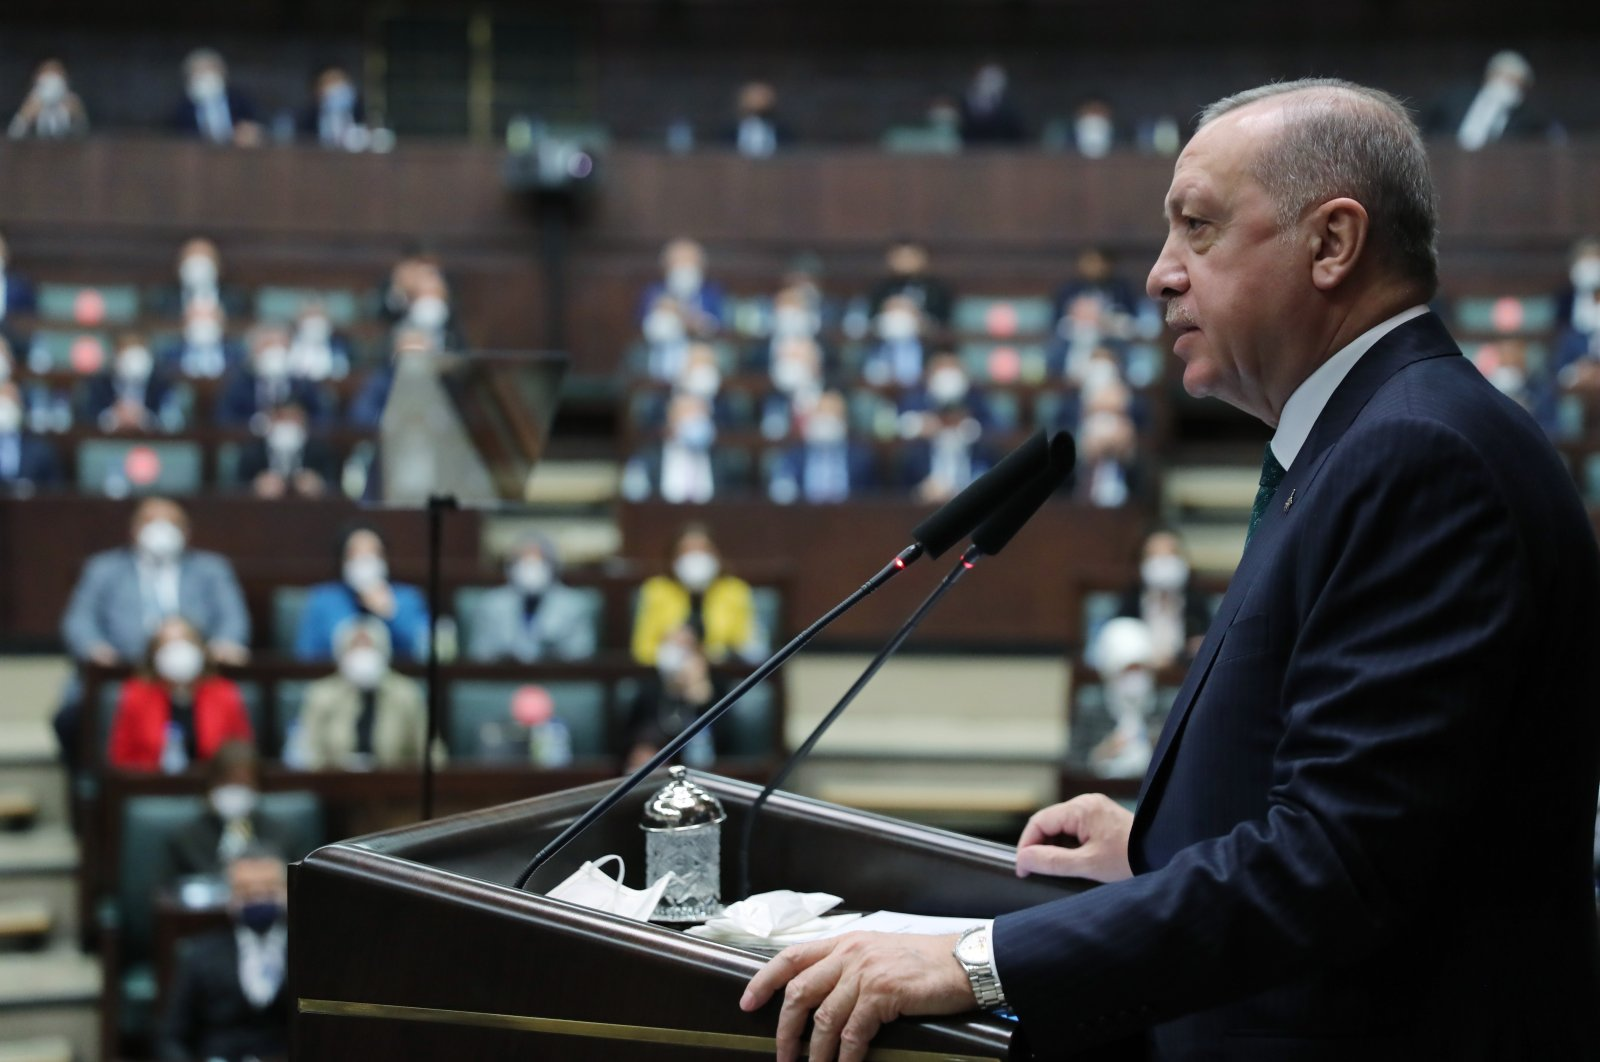 President Recep Tayyip Erdoğan addresses ruling Justice and Development Party (AK Party) lawmakers during a parliamentary group meeting in Parliament, Ankara, Turkey, April 7, 2021. (AA Photo)